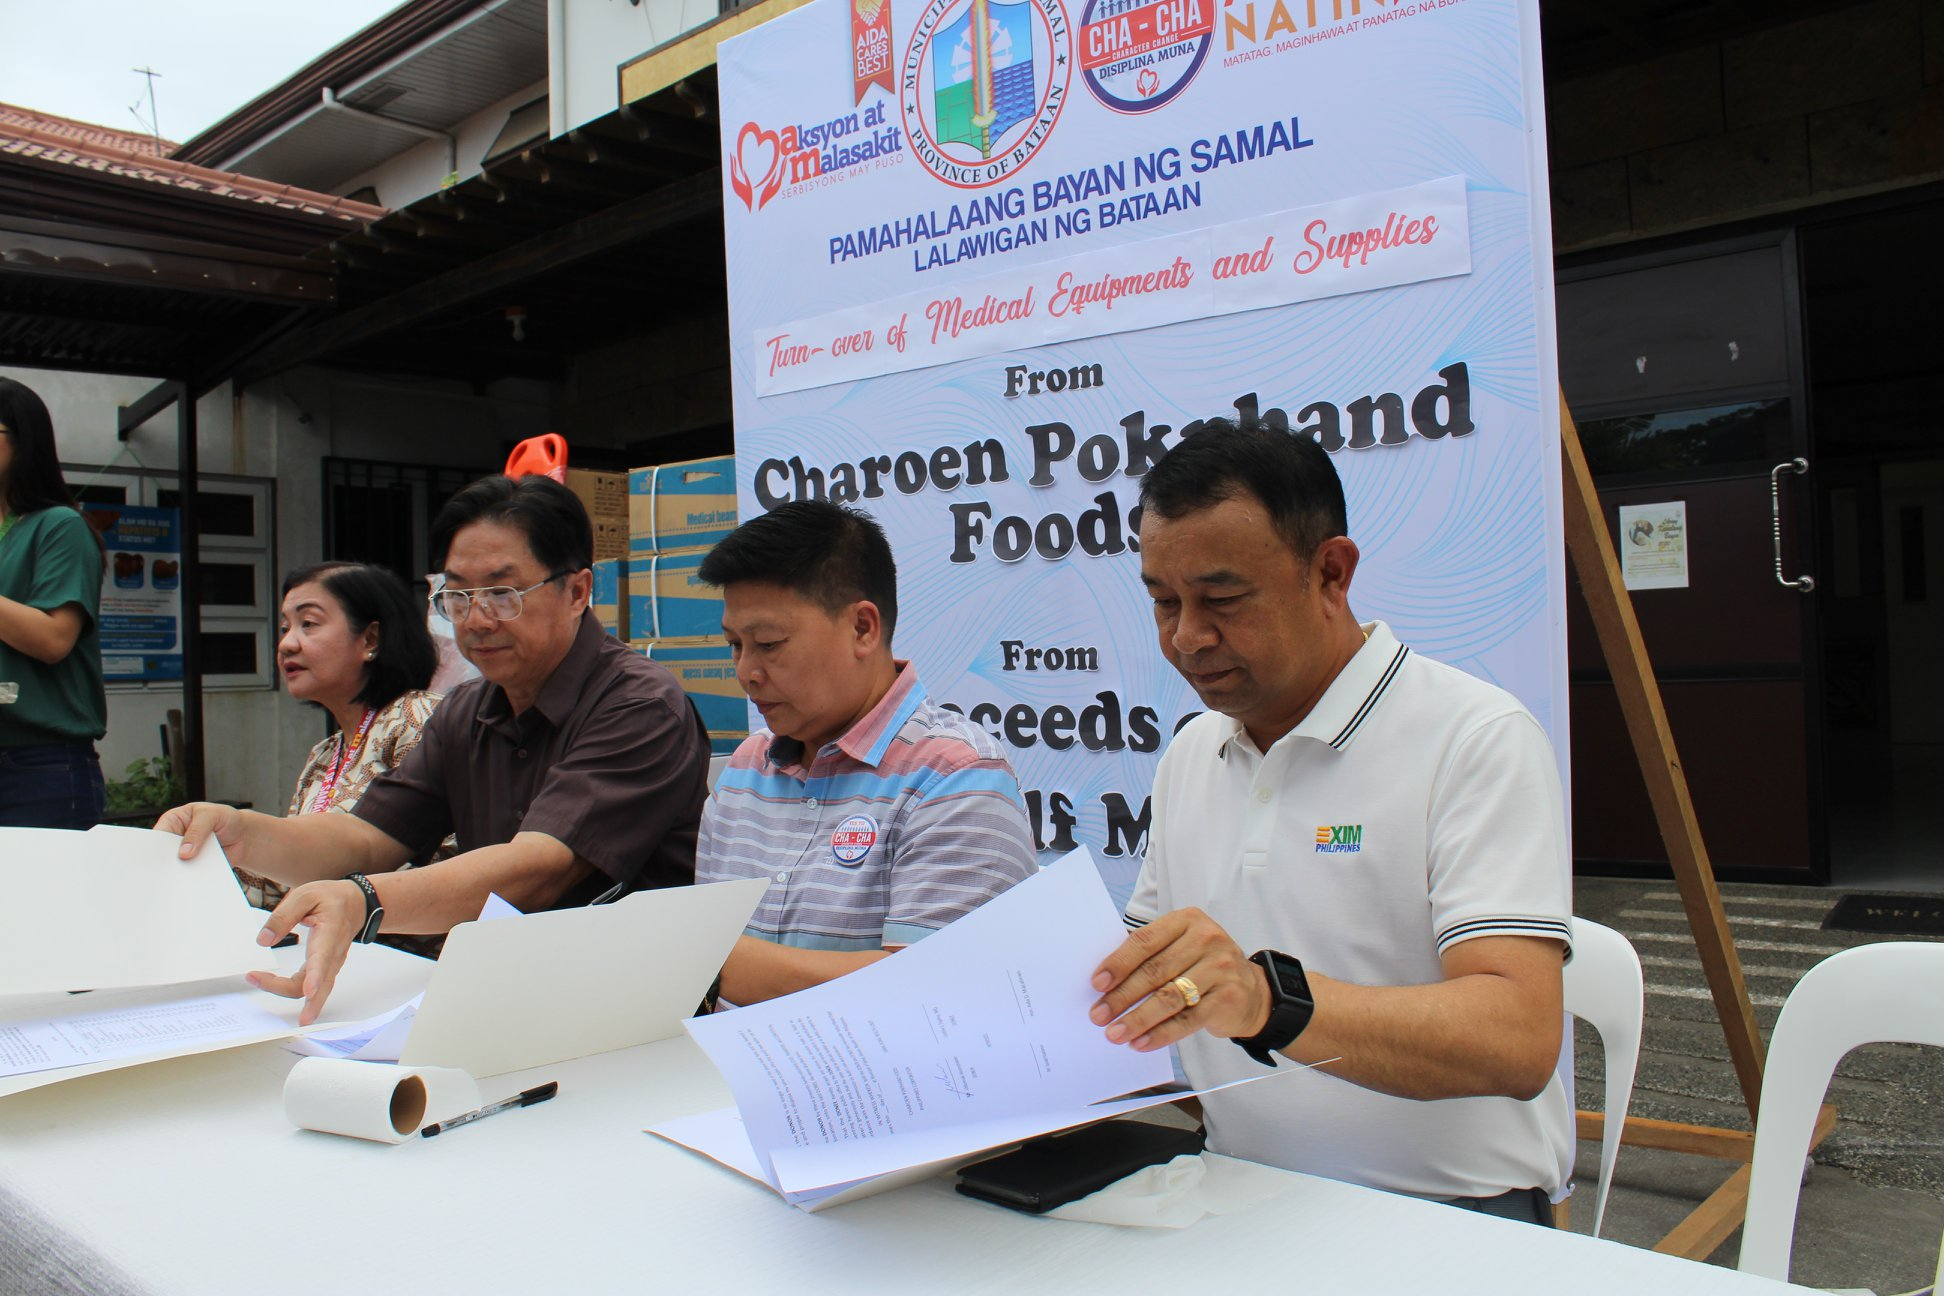 Turn over of Medical equipment